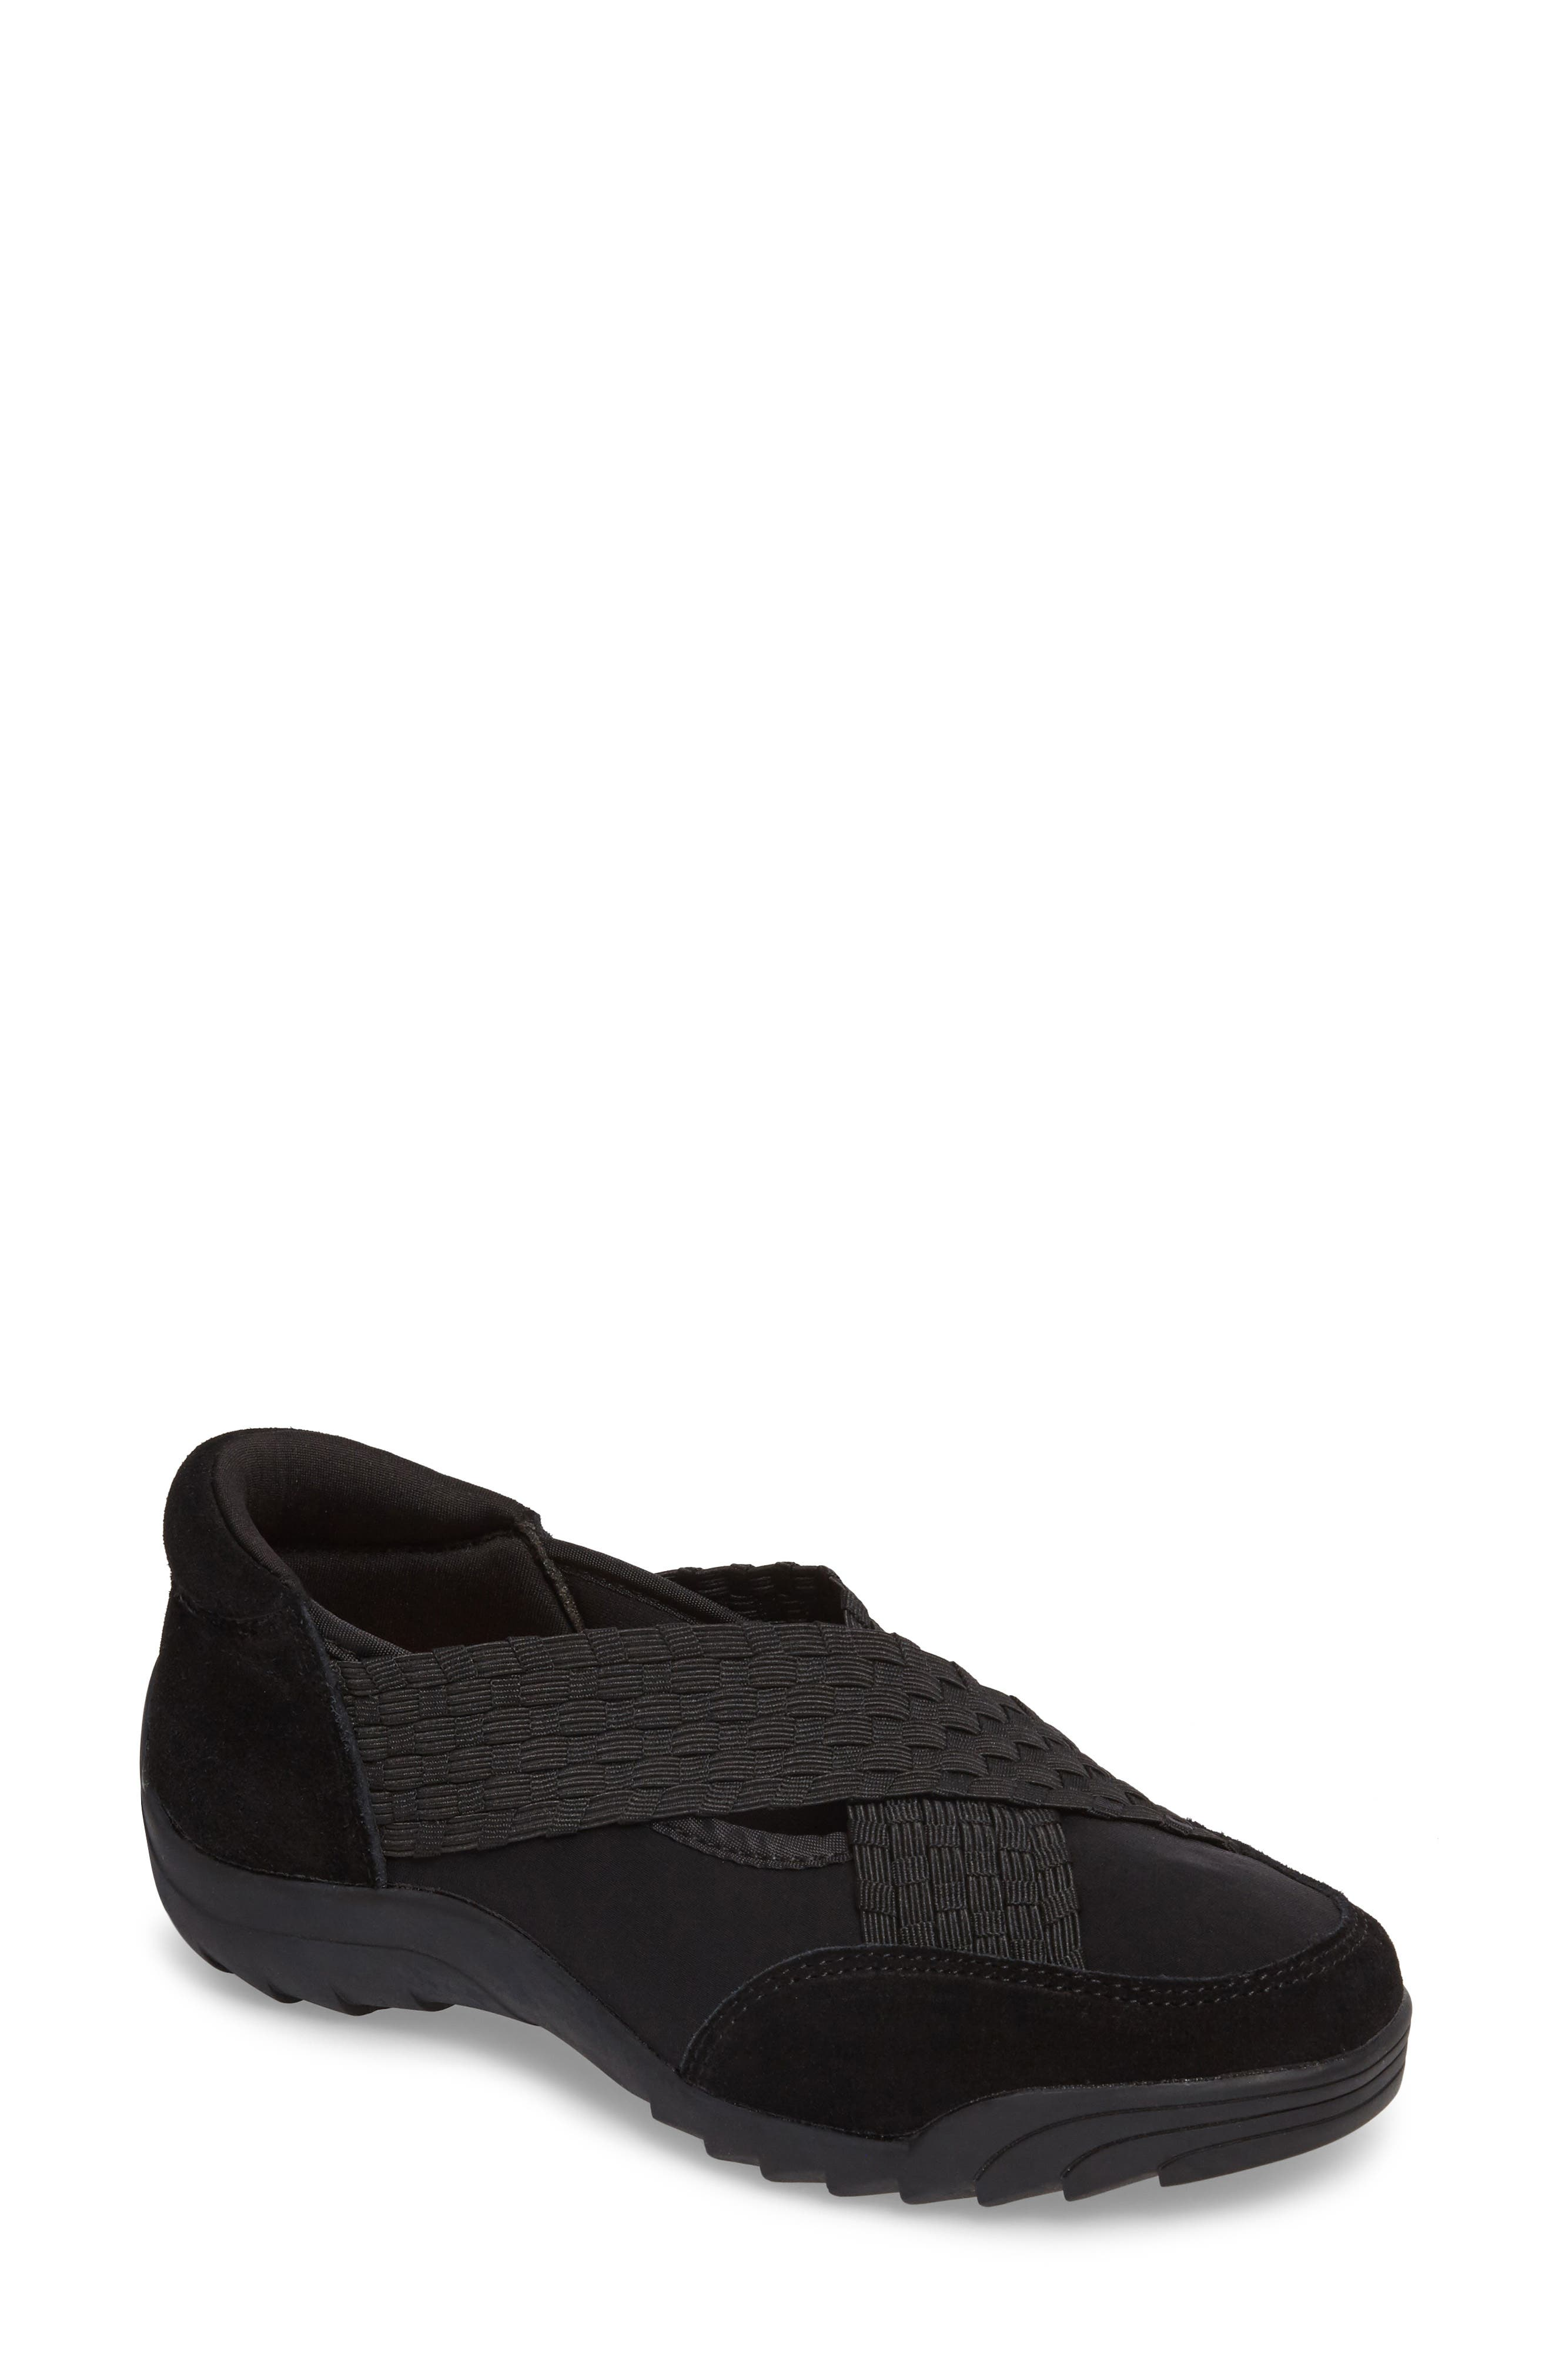 Rigged Phoenix Slip-On Sneaker,                         Main,                         color, Black Fabric